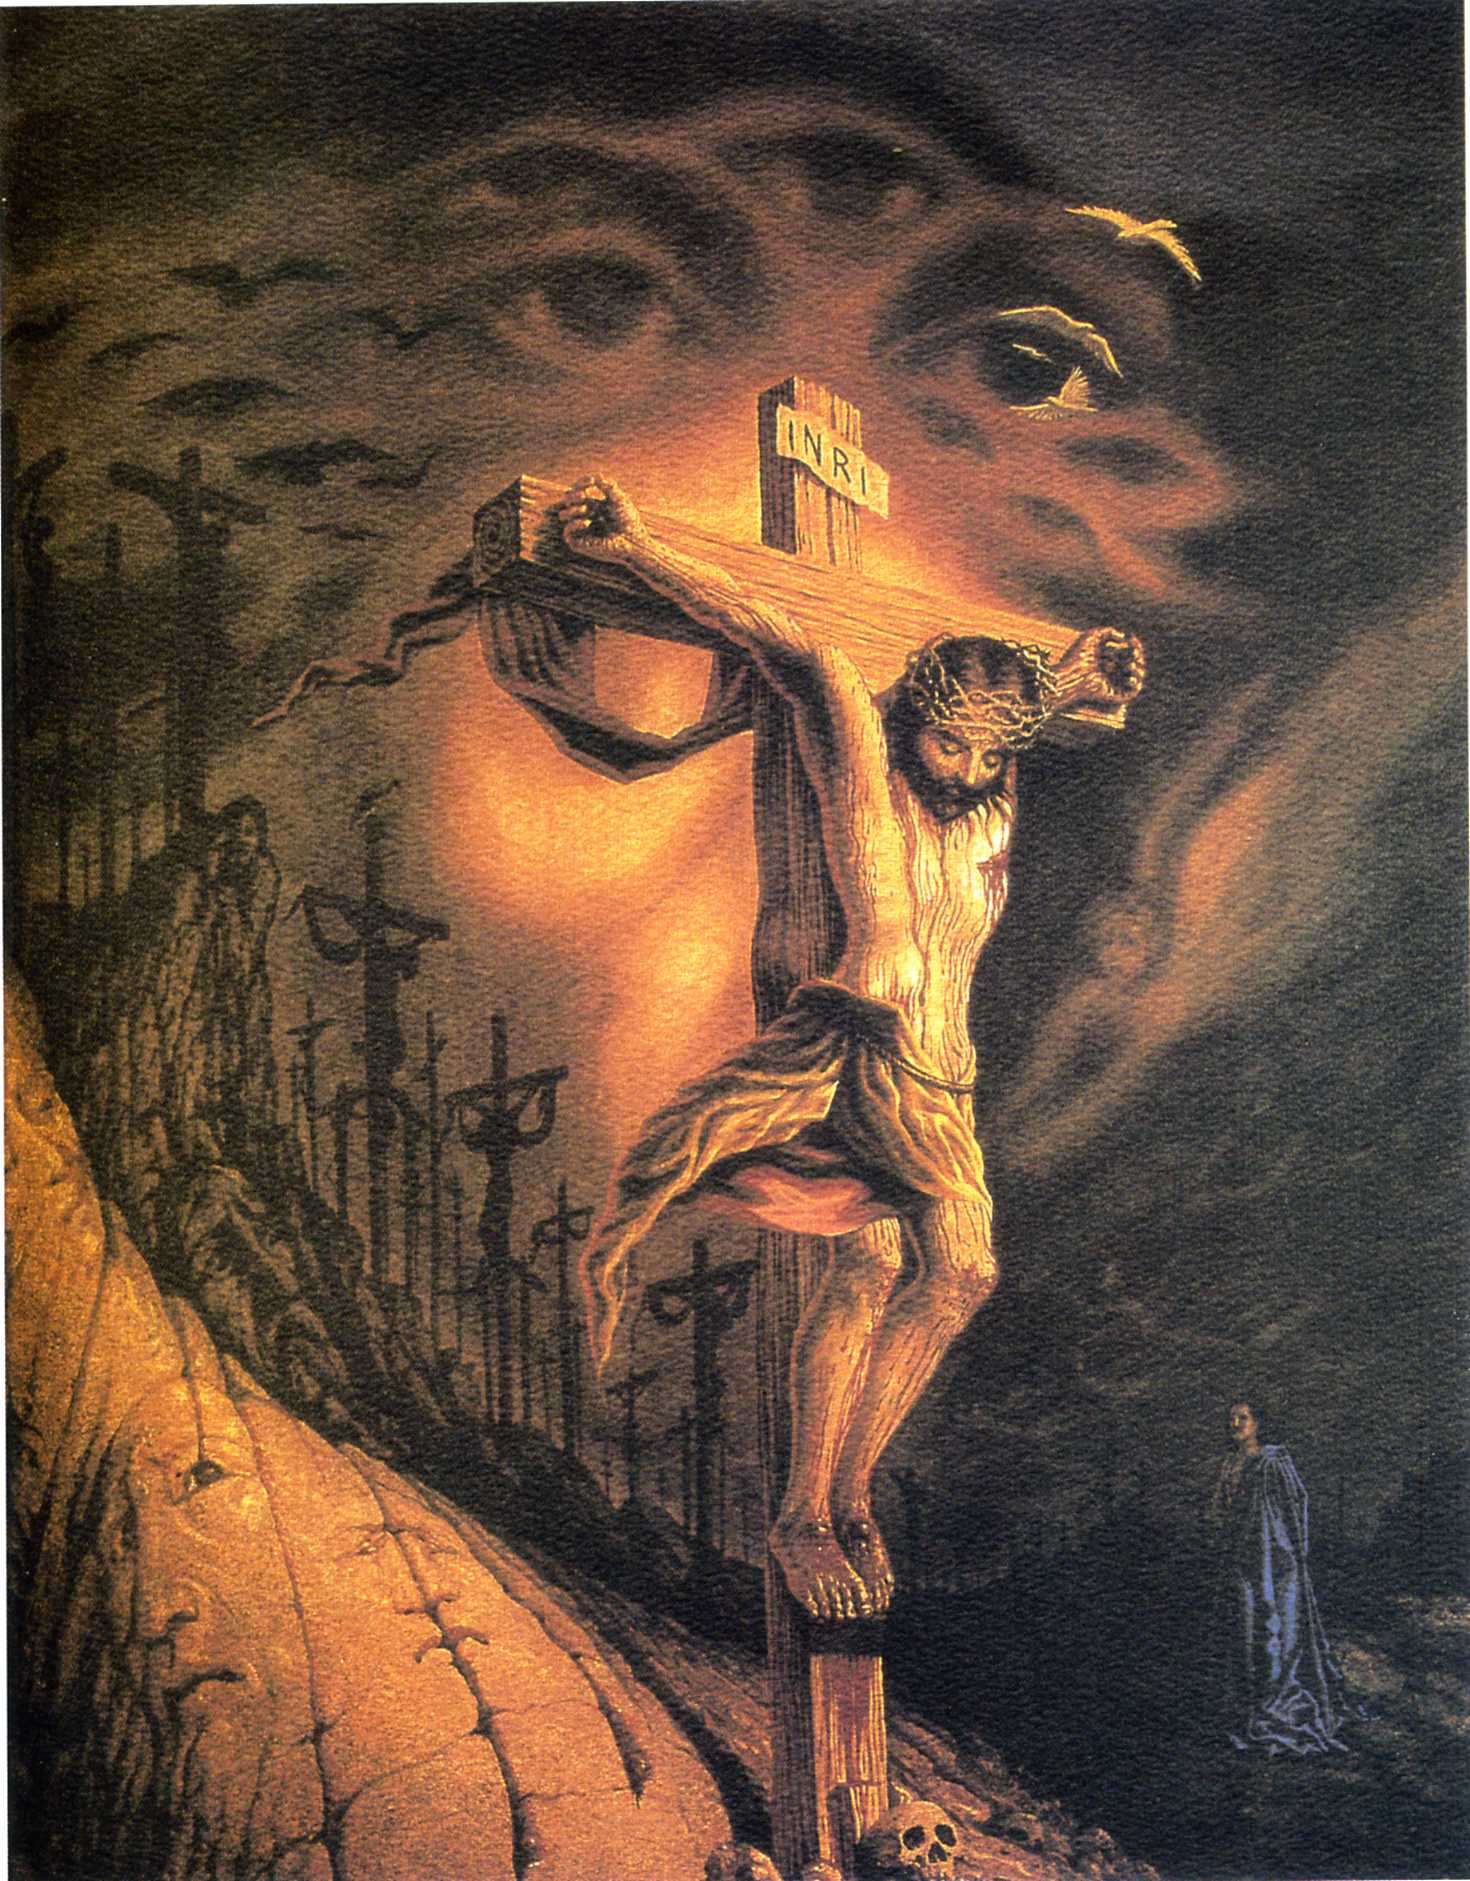 ... illusion painting by Octavio Ocampo of Jesus Christ on the cross